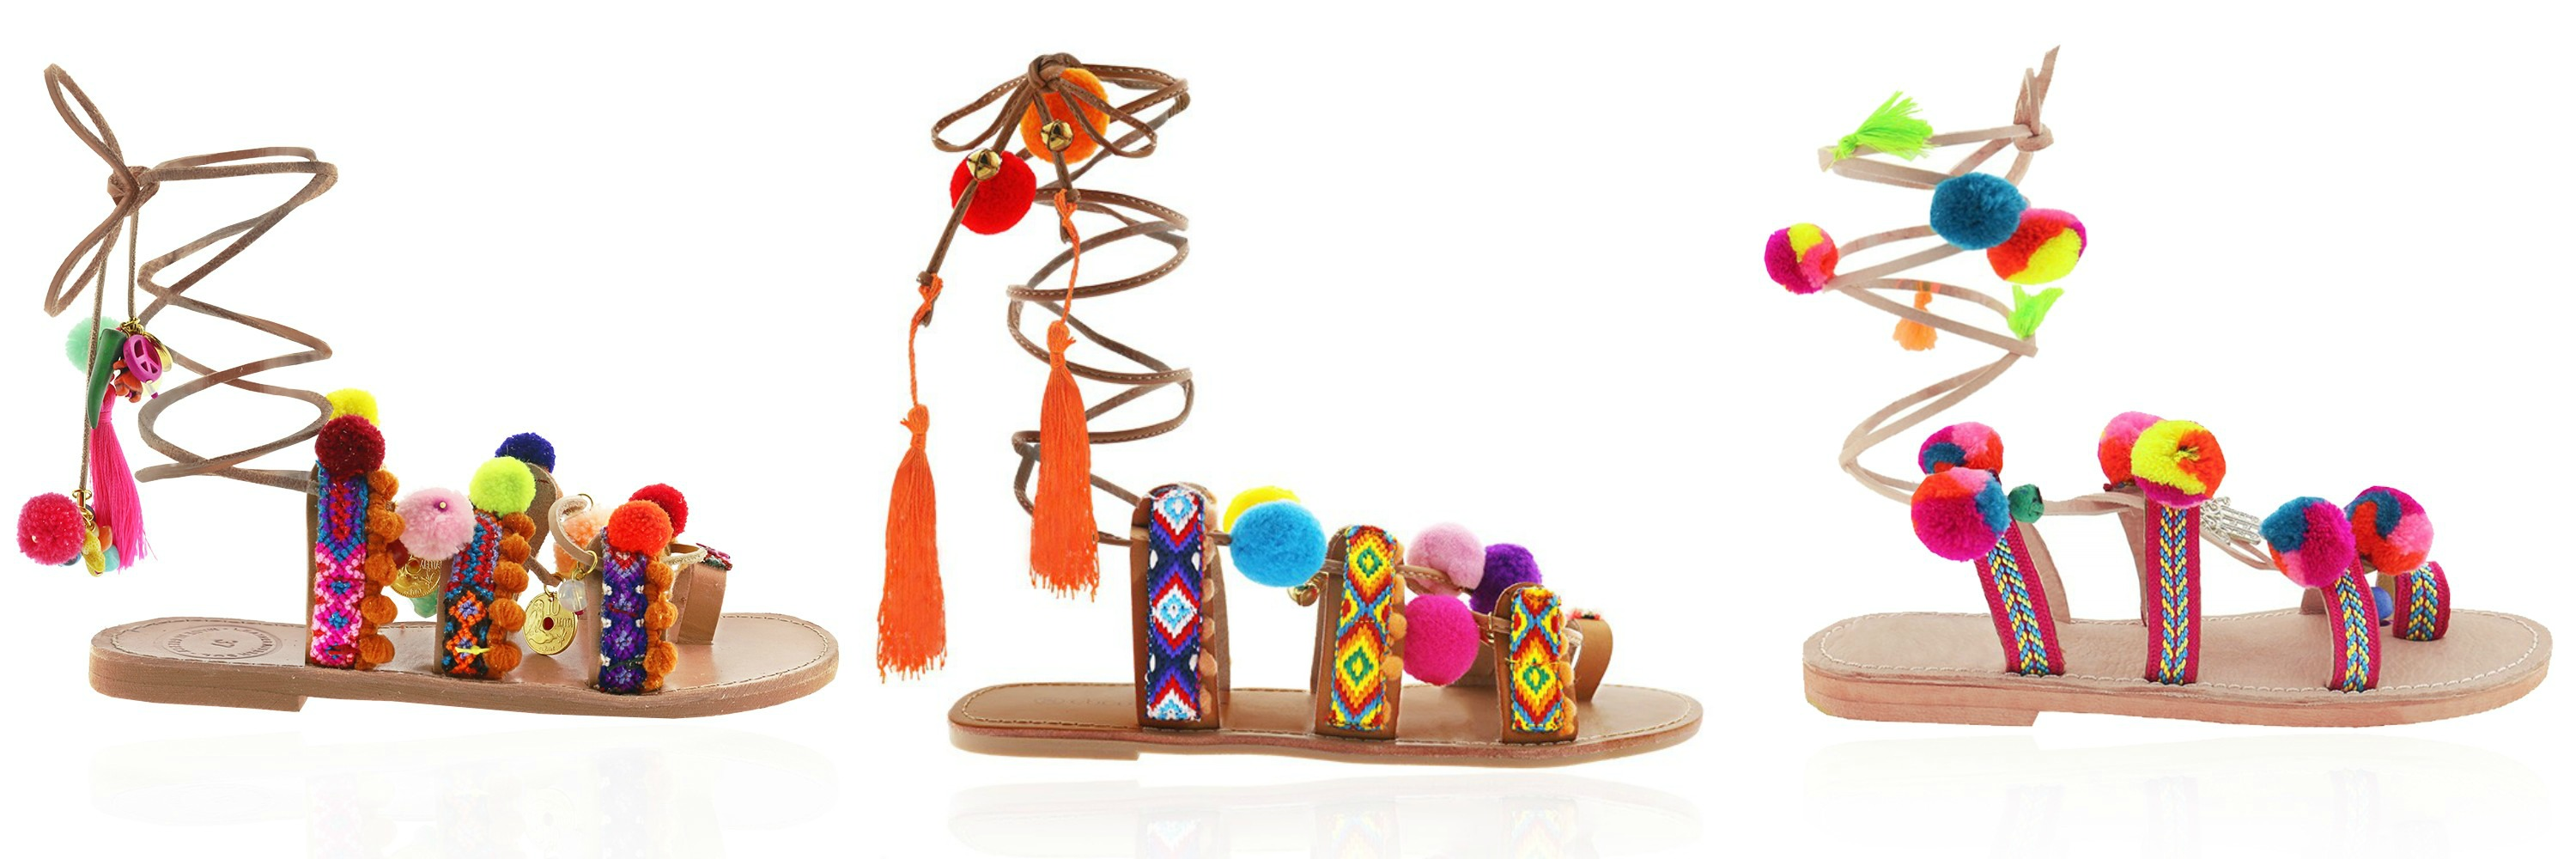 pom pom sandals summer shoes